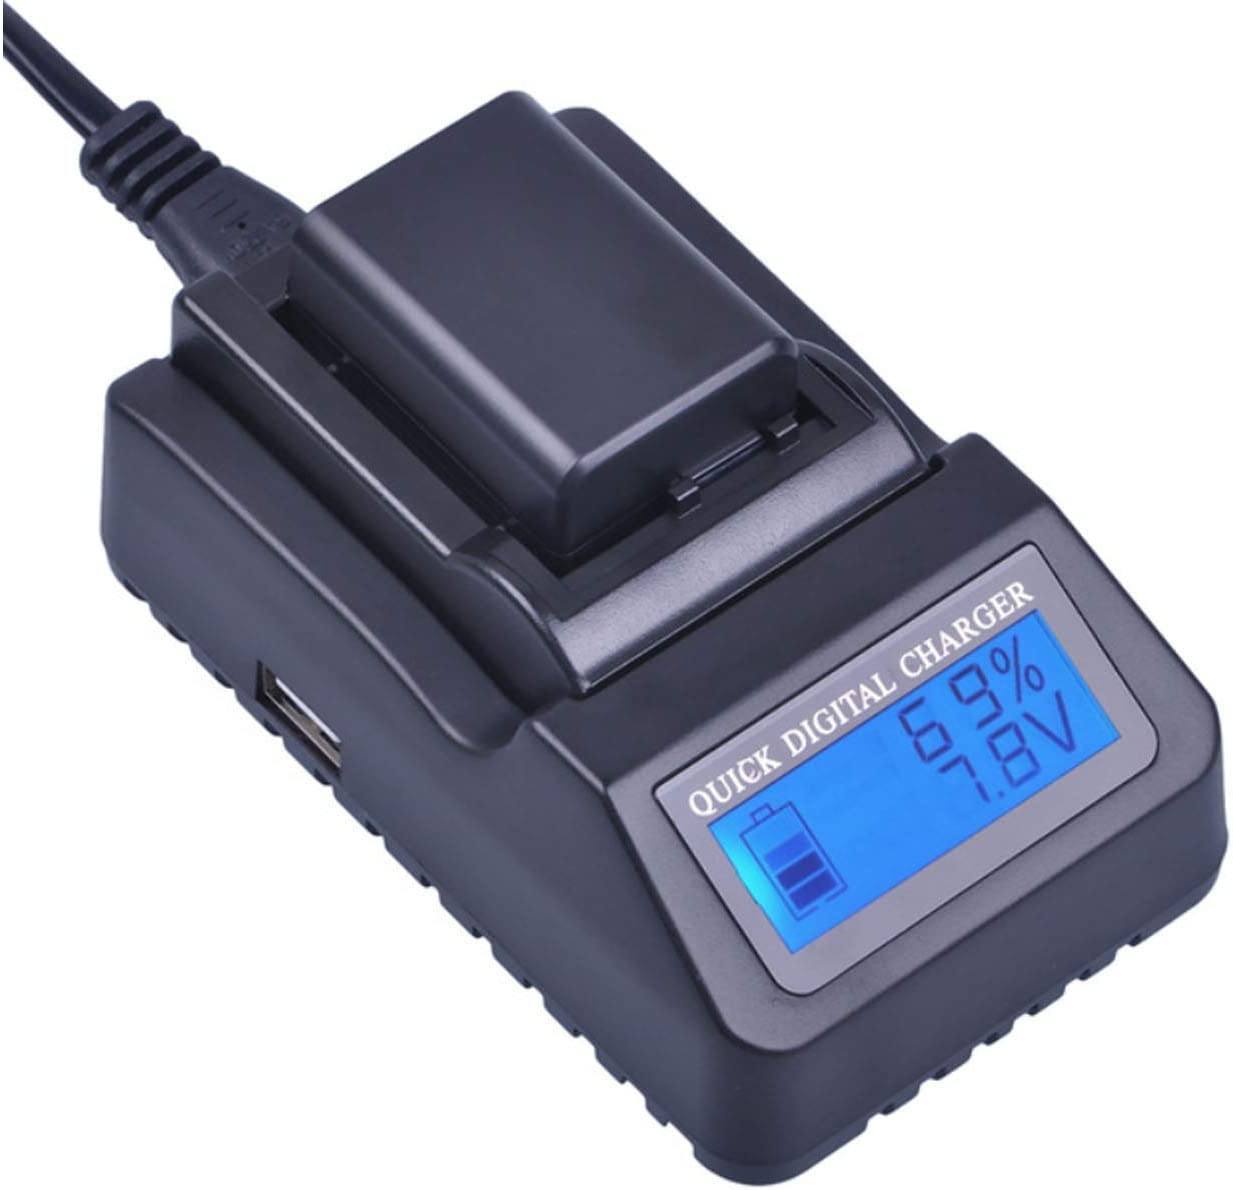 GZ-MG175 Camcorder GZ-MG155 LCD Dual Quick Battery Charger for JVC Everio GZ-MG150